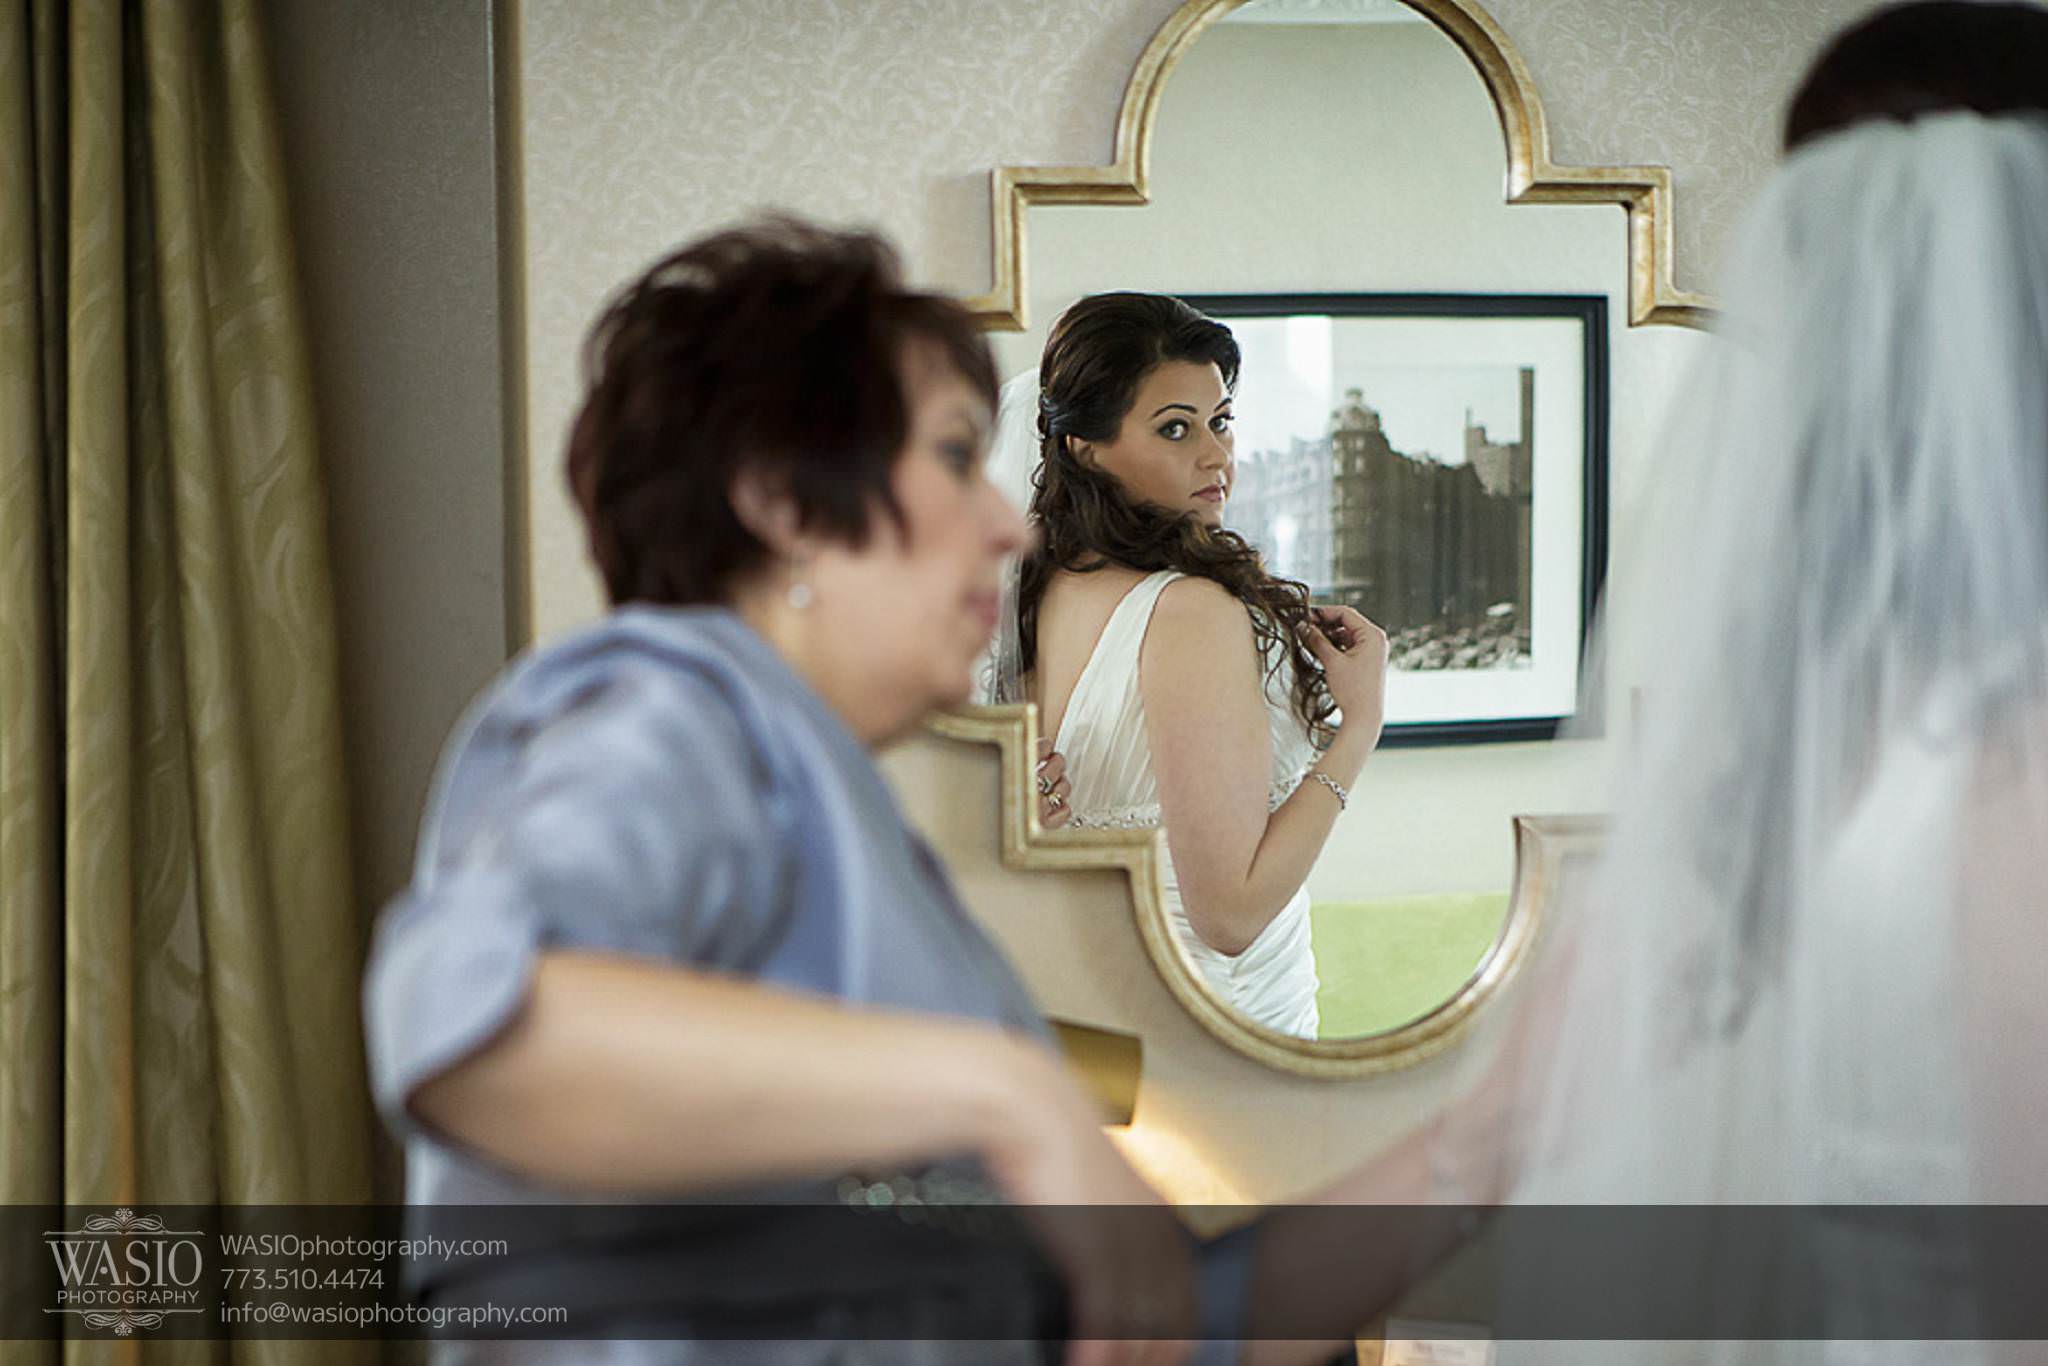 Chicago-wedding-photos-reflection-vintage-mirror-bridal-photography-047 Chicago Wedding Photos - Svetlana + Yuriy